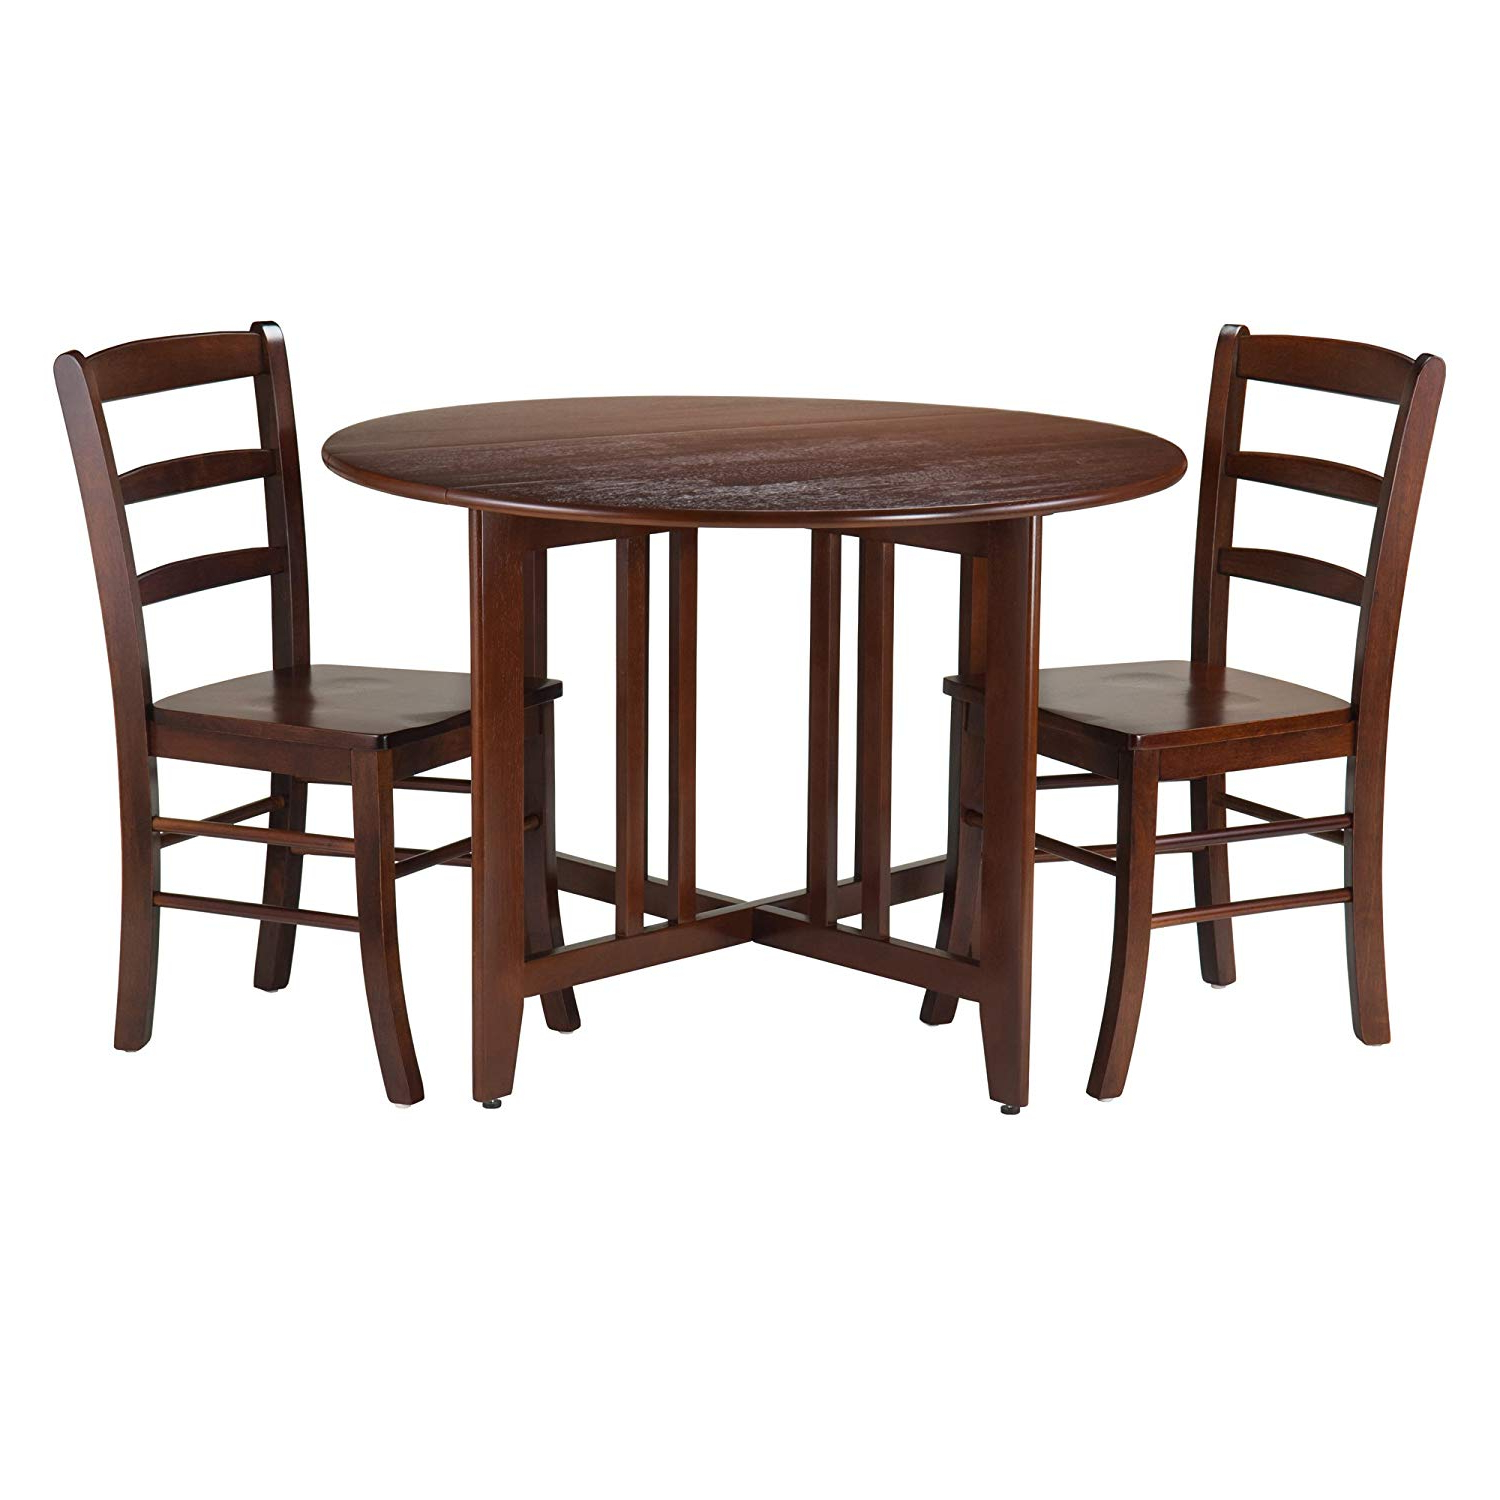 Alamo Transitional 4 Seating Double Drop Leaf Round Casual Dining Tables Within Best And Newest Winsome 3 Piece Alamo Round Drop Leaf Table With 2 Ladder Back Chairs, Brown (View 3 of 26)